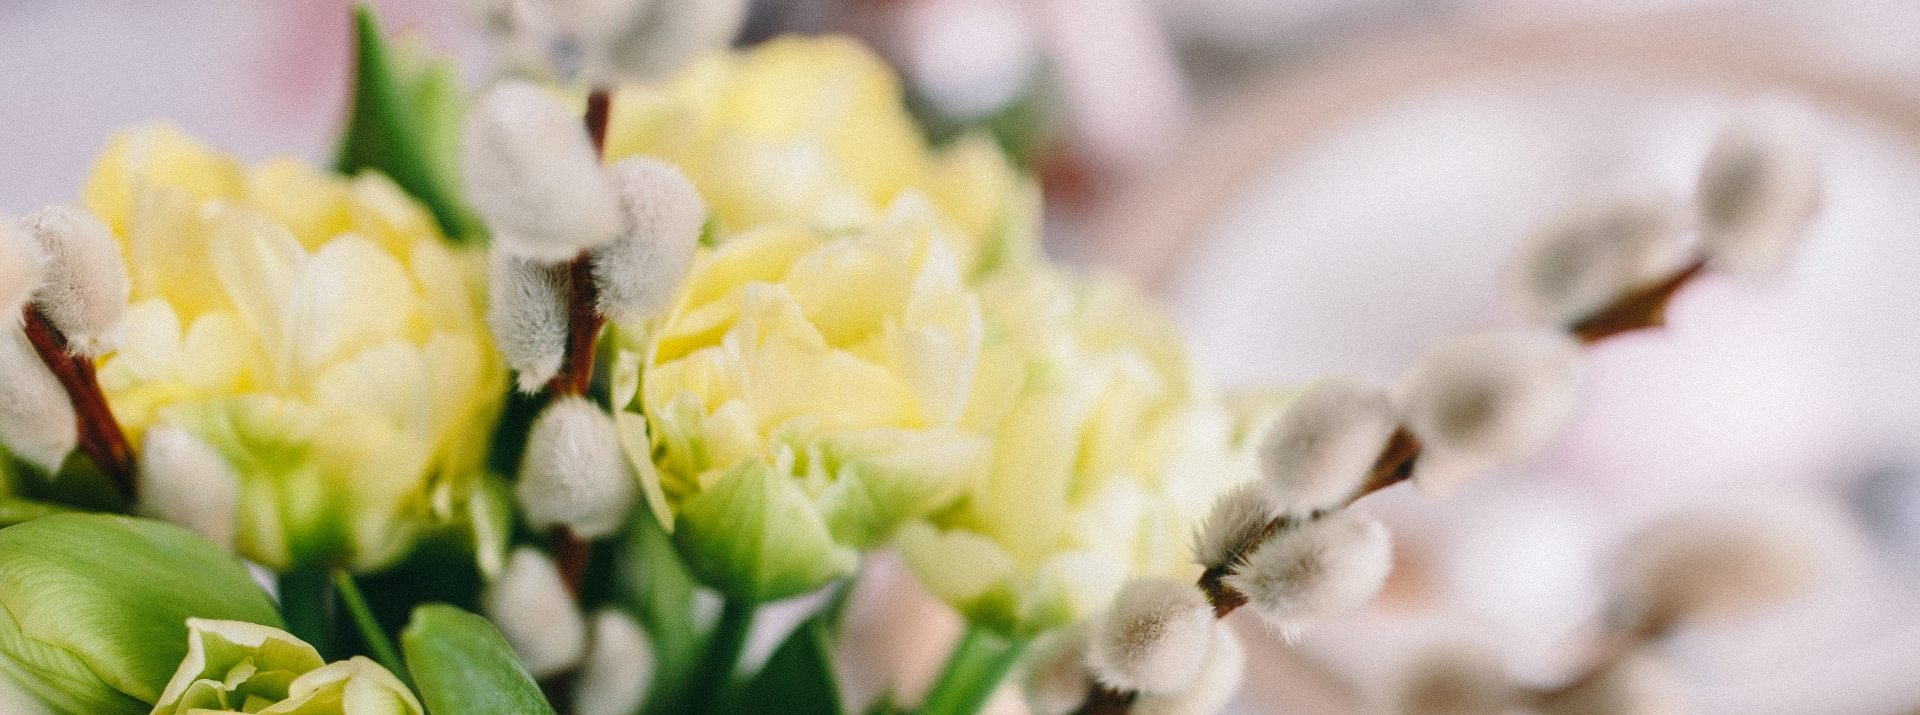 cropped-kaboompics.com_Spring-flowers-on-a-table-1.jpg